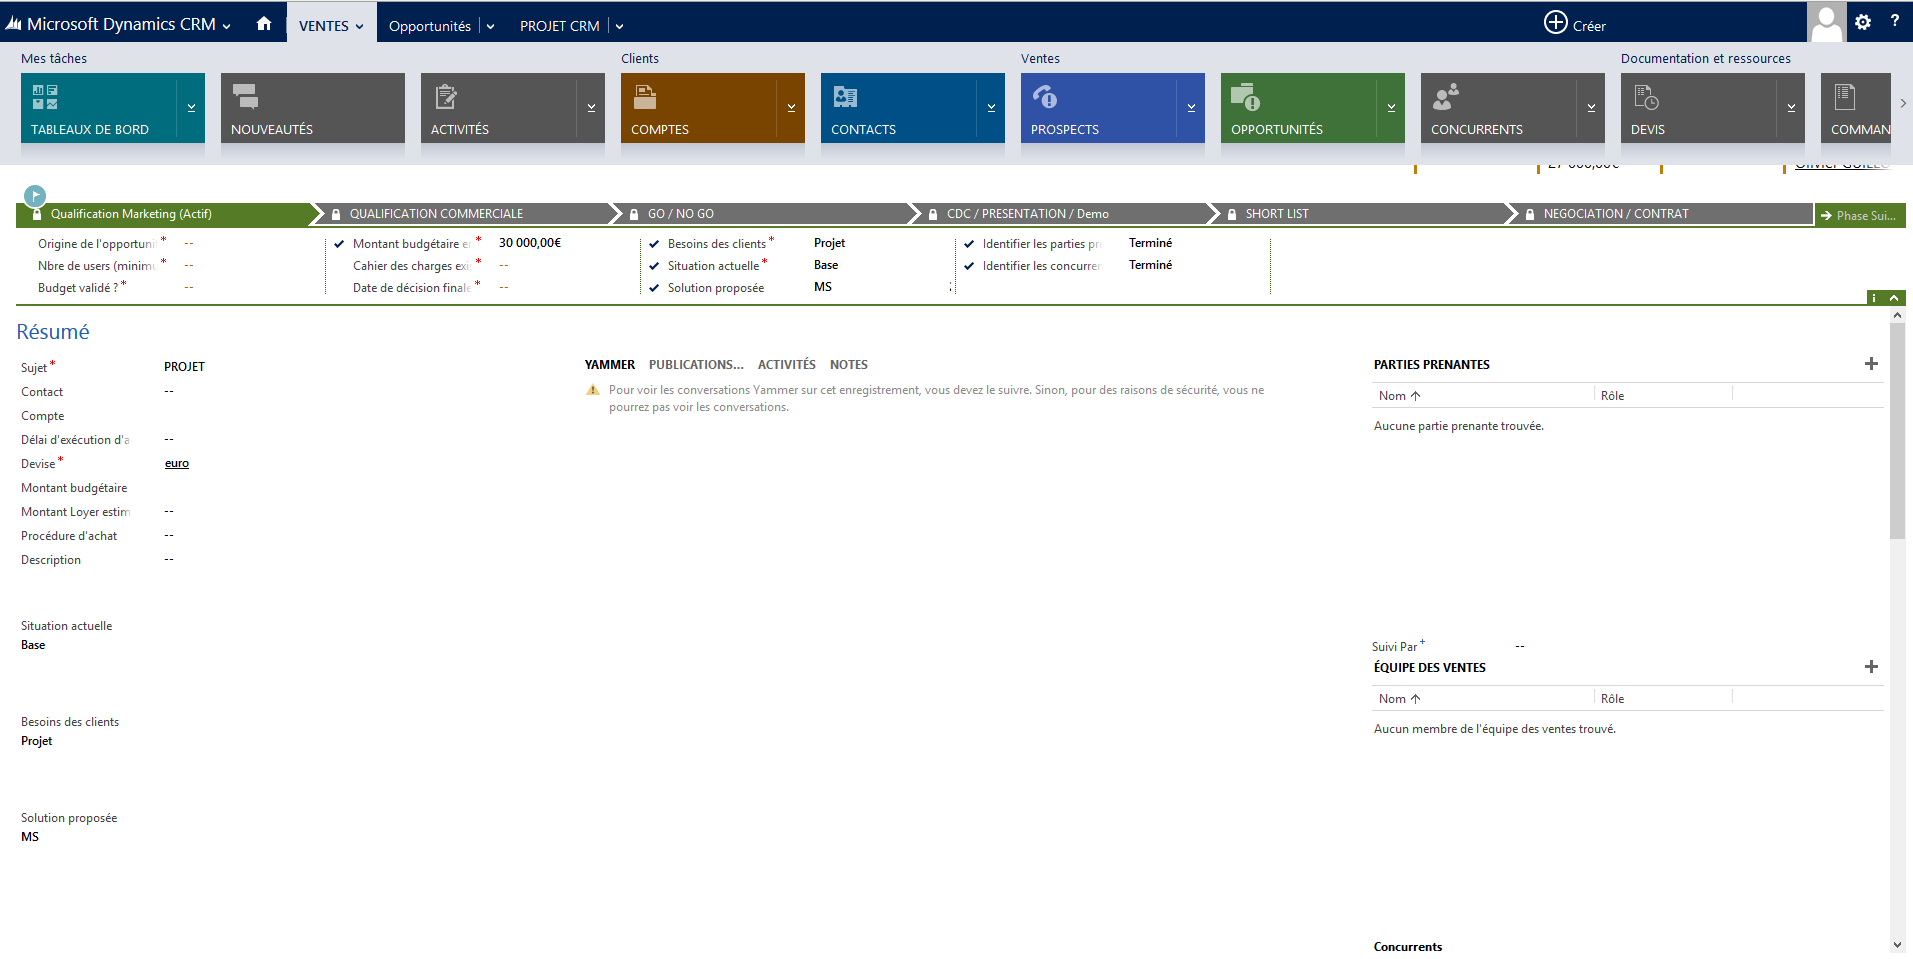 Microsoft Dynamics CRM: Service Level Agreement (SLA), Telefono, Mobile Application